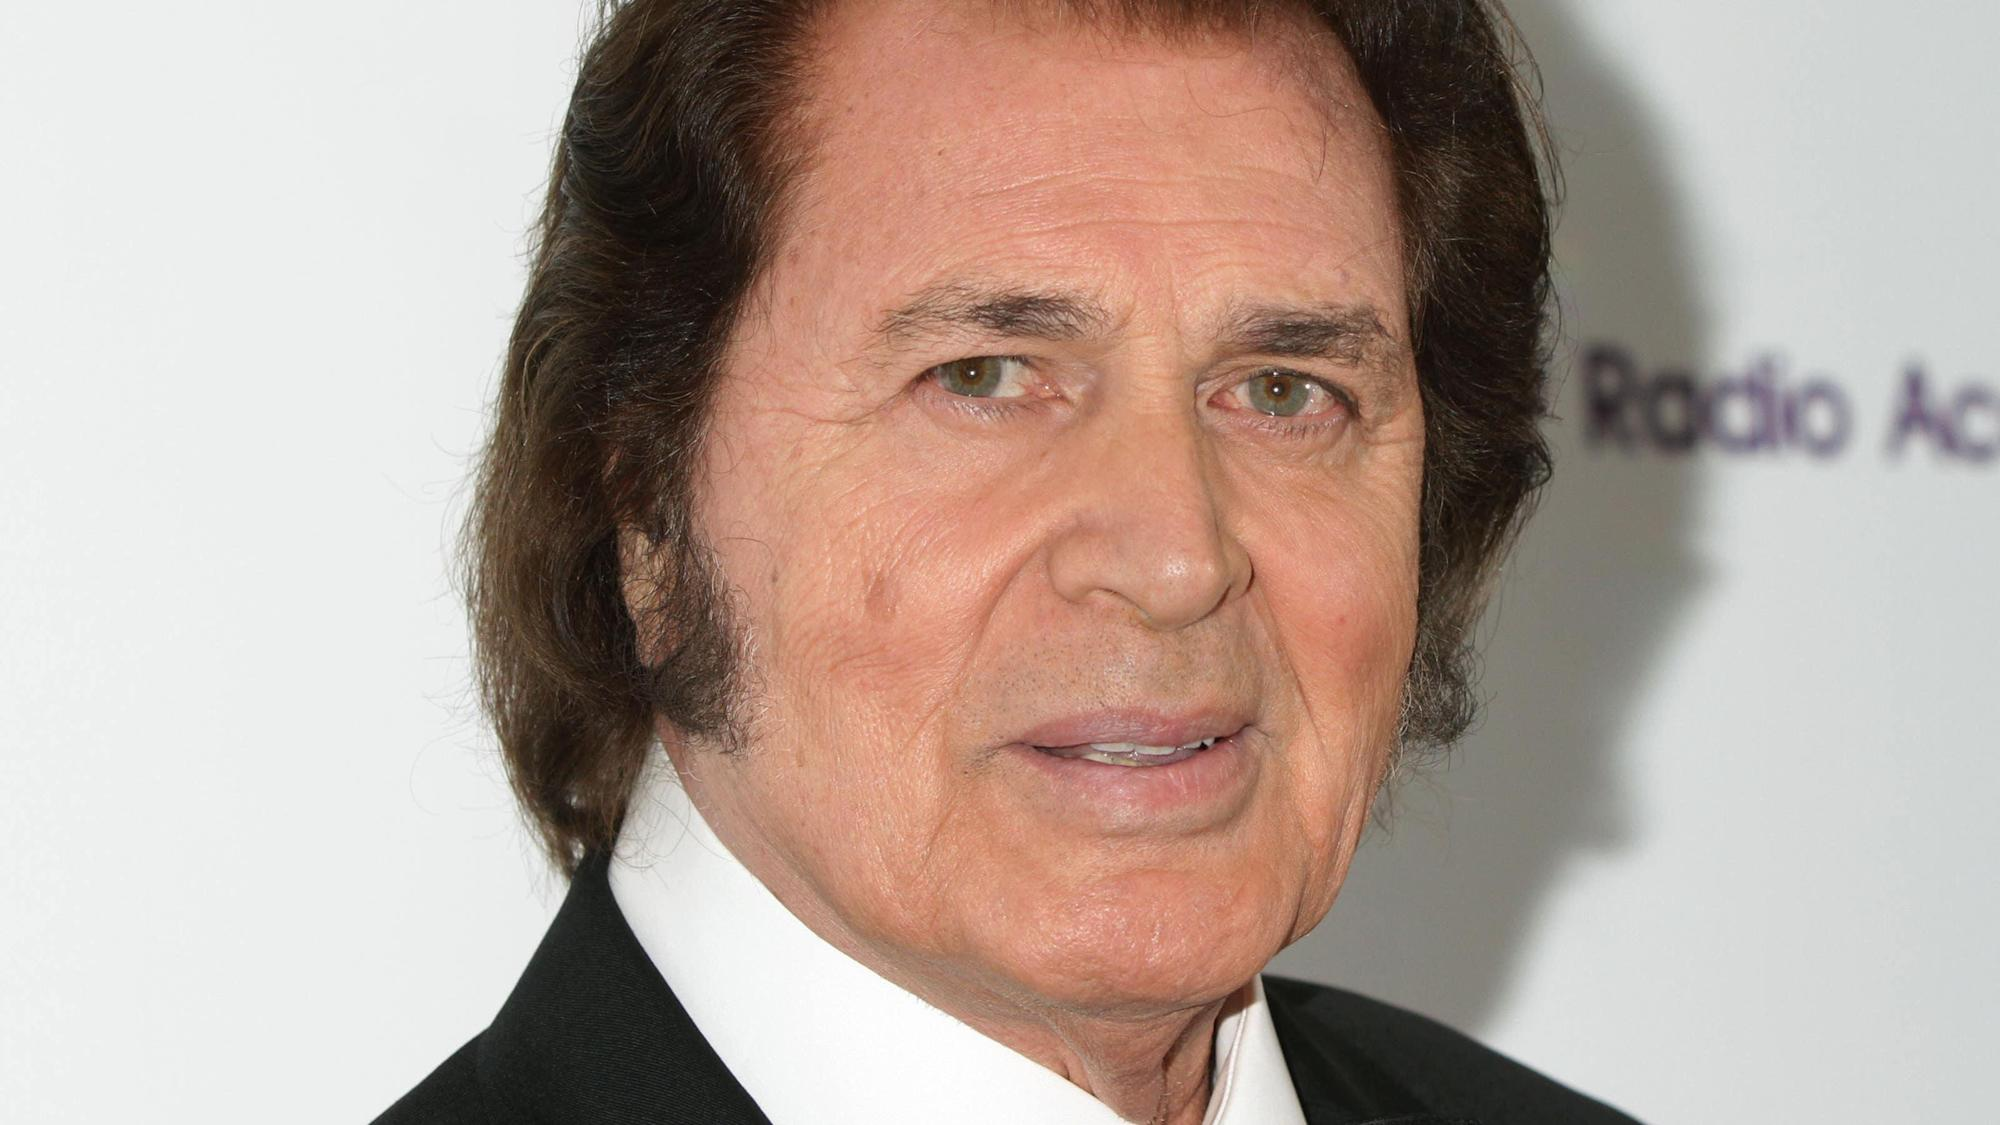 Humperdinck says he misses late wife 'every day' on wedding anniversary